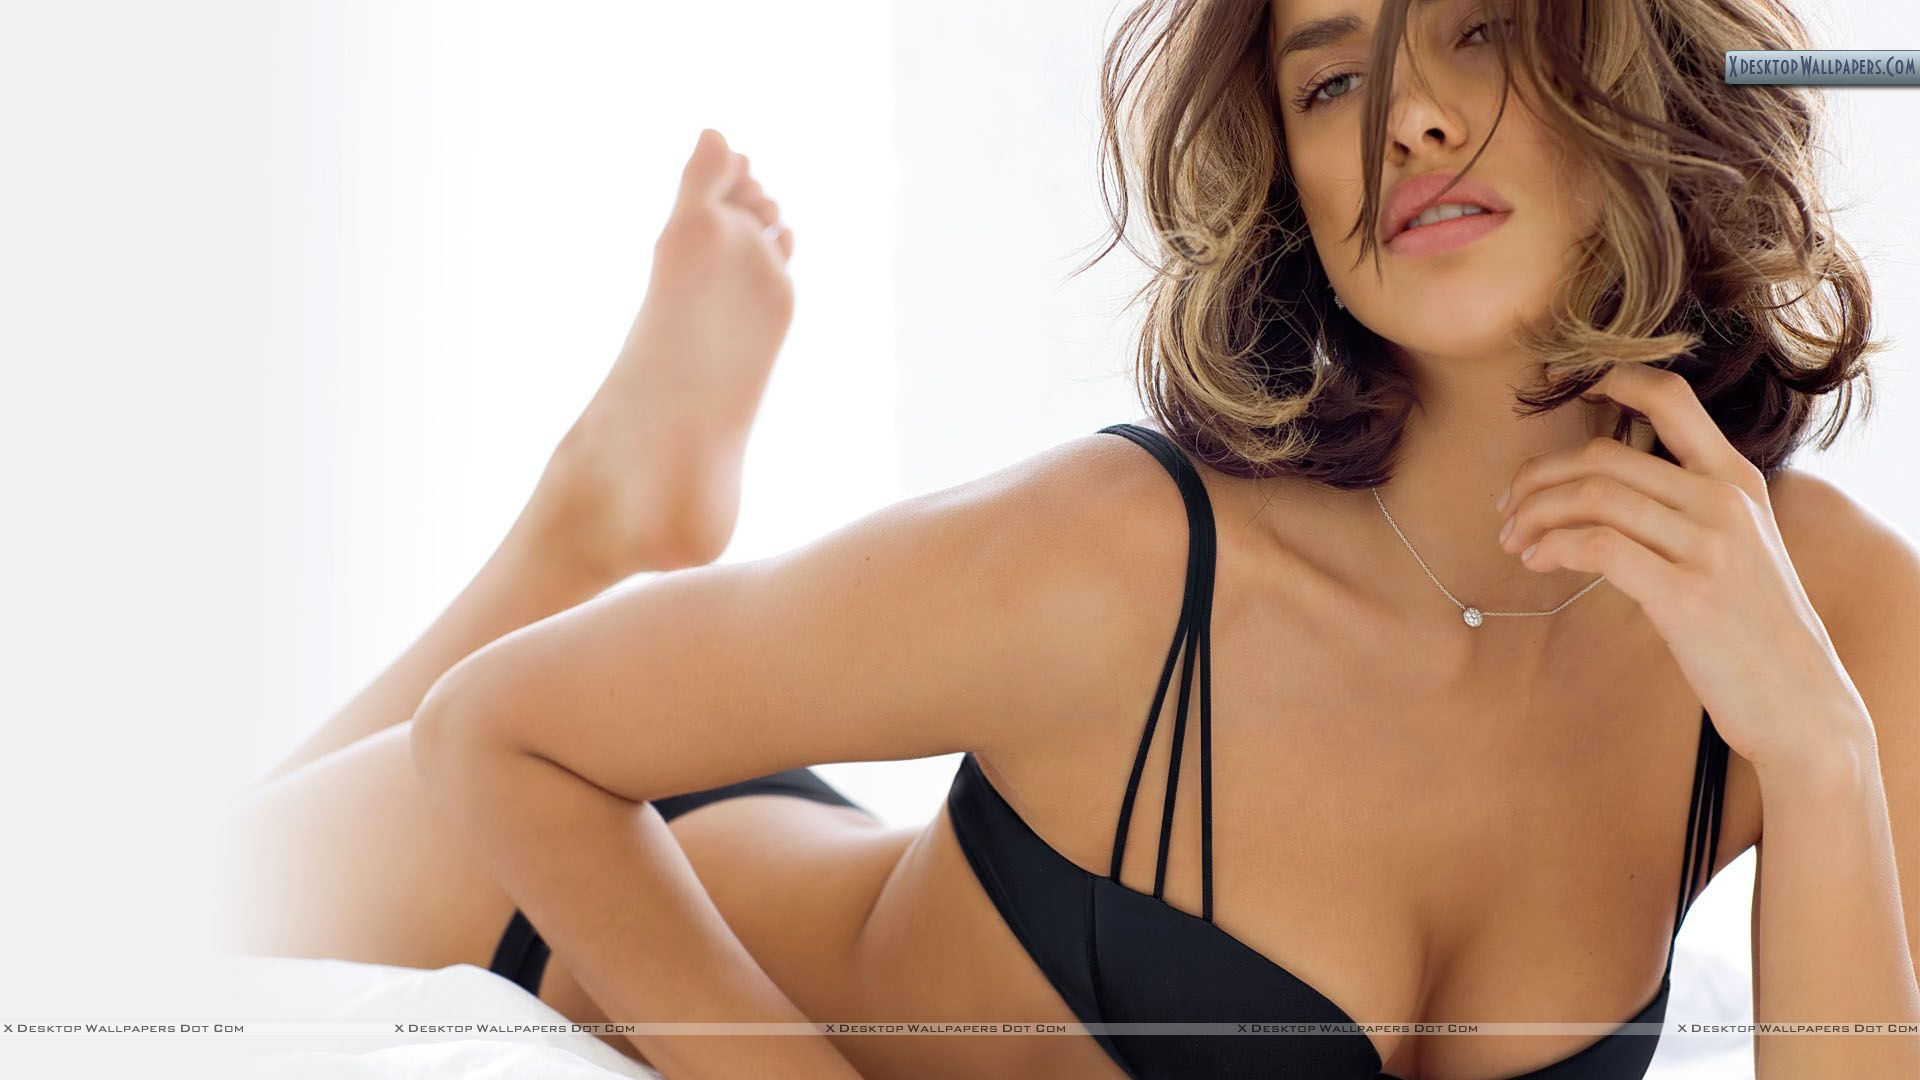 https://i1.wp.com/xdesktopwallpapers.com/wp-content/uploads/2011/02/Irina-Shayk-Pink-Lips-Laying-on-Bed.jpg